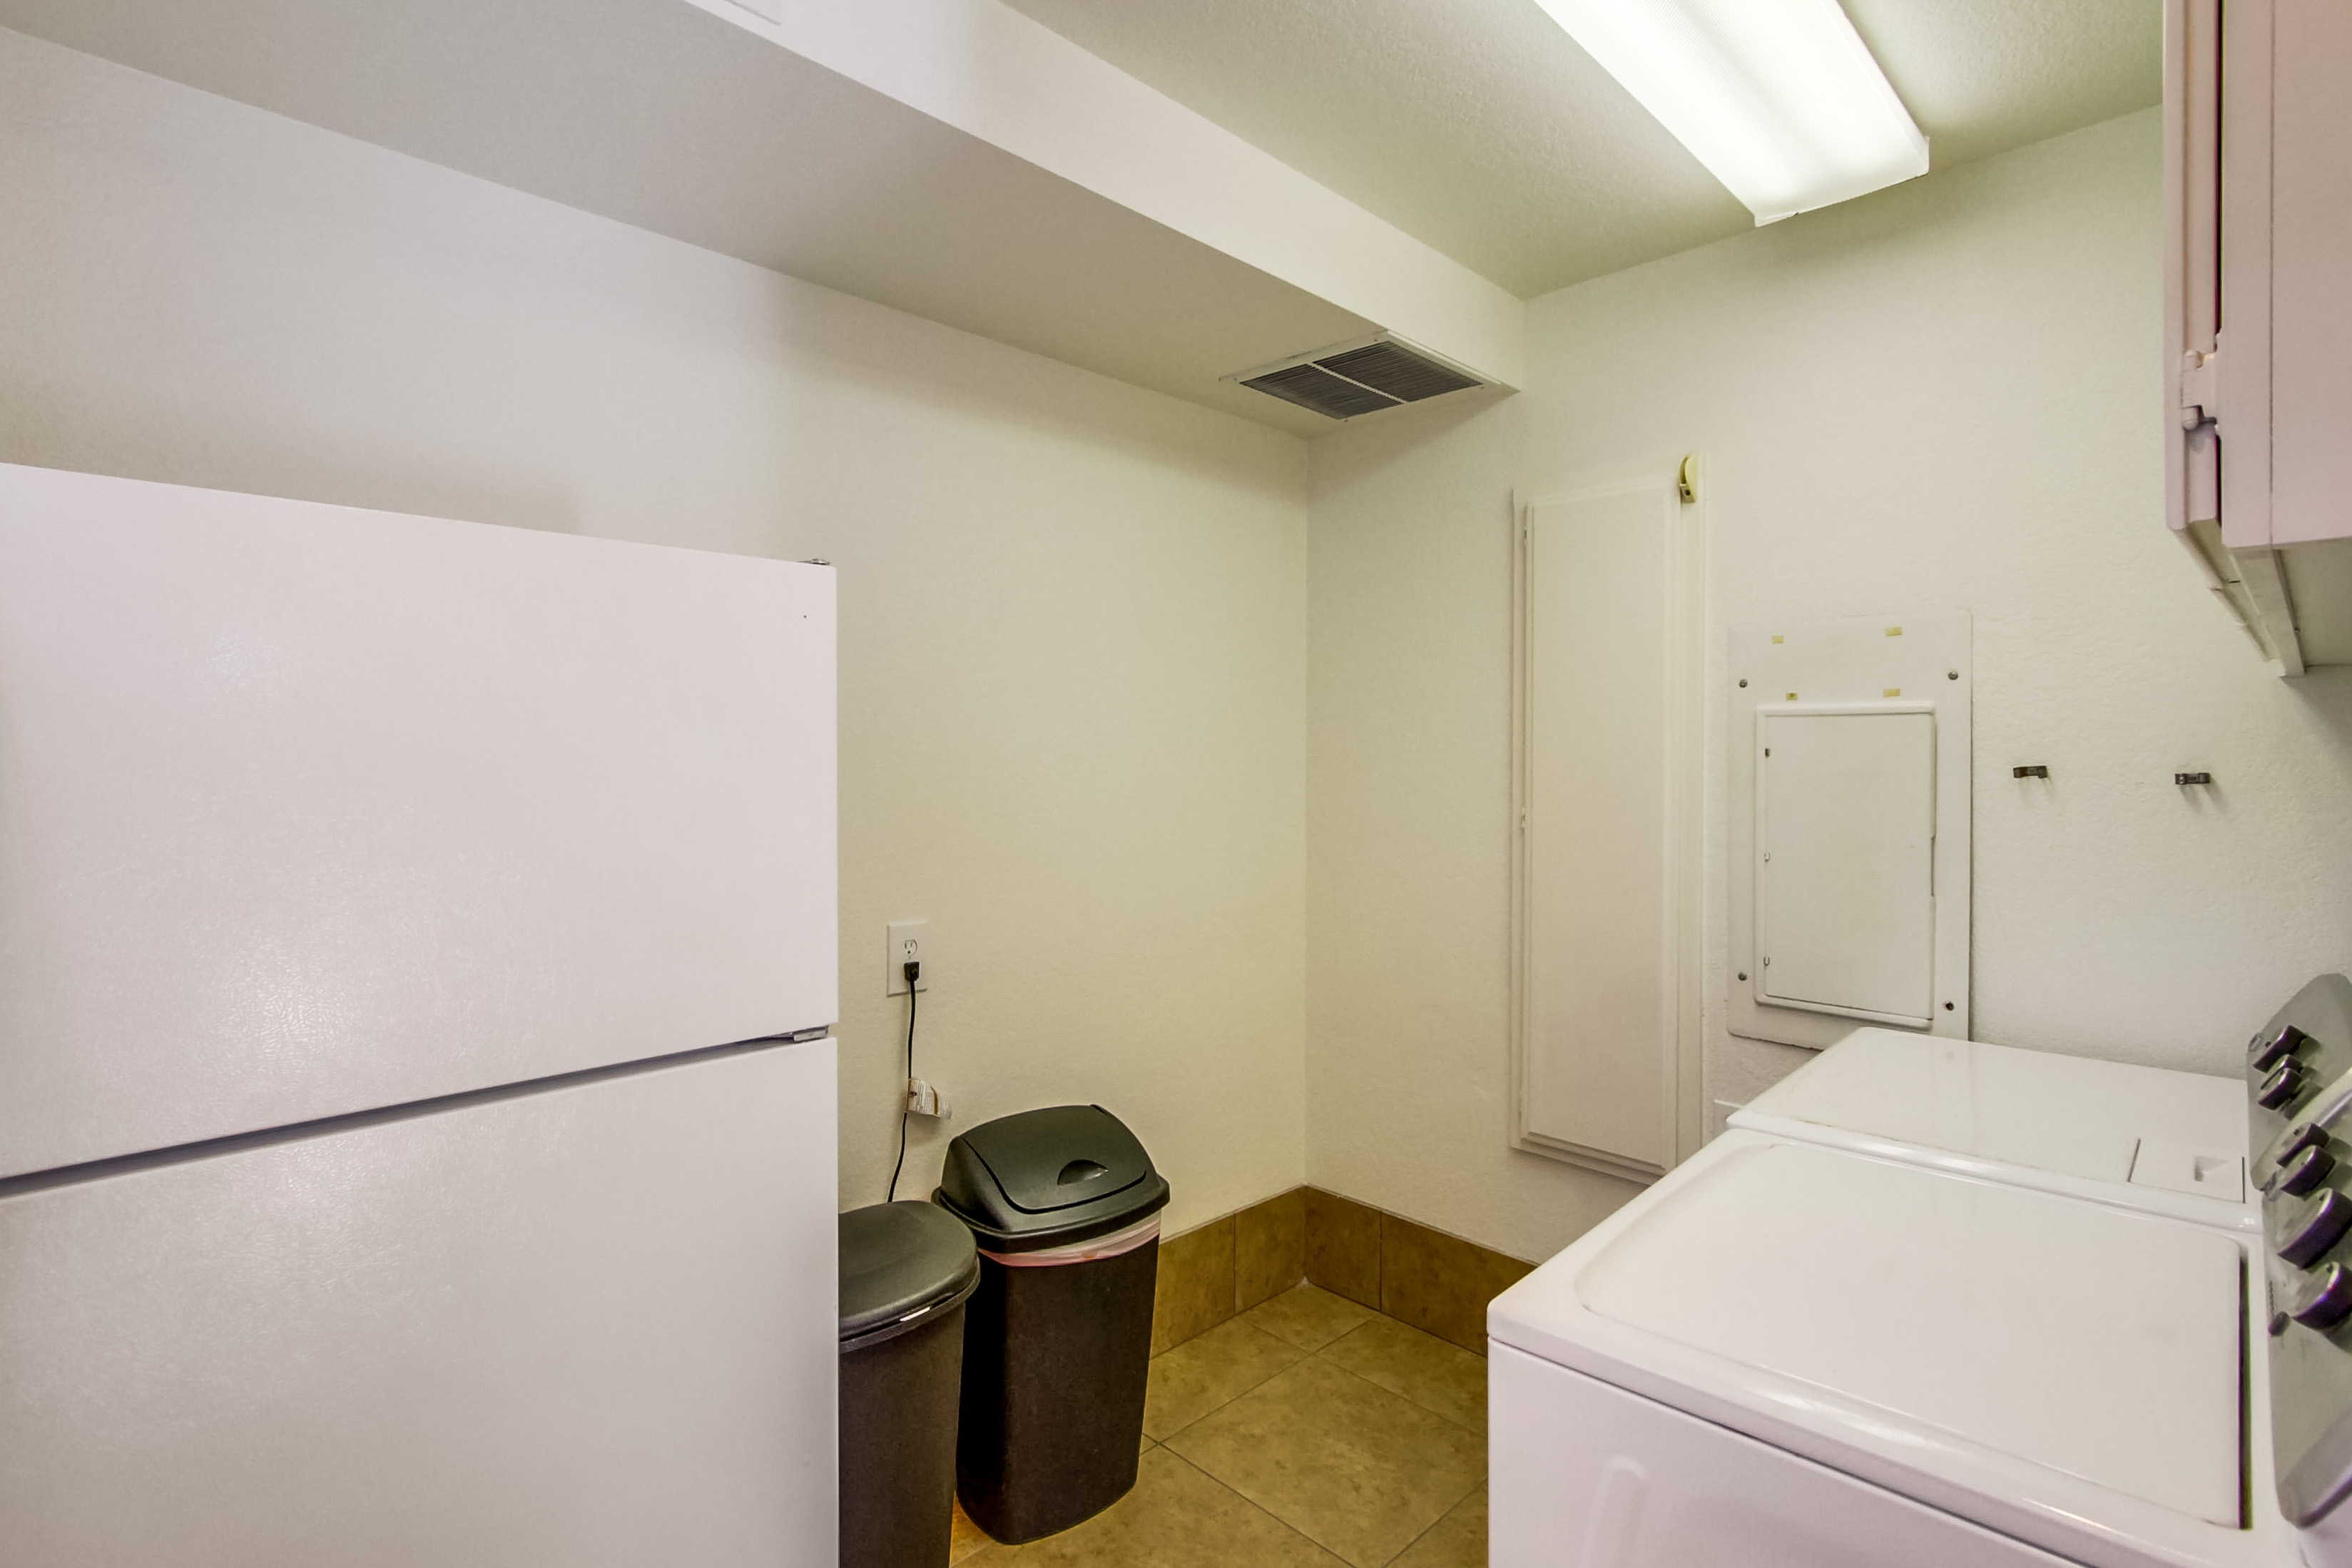 Laundry Room with Washer, Dryer, and Fridge.